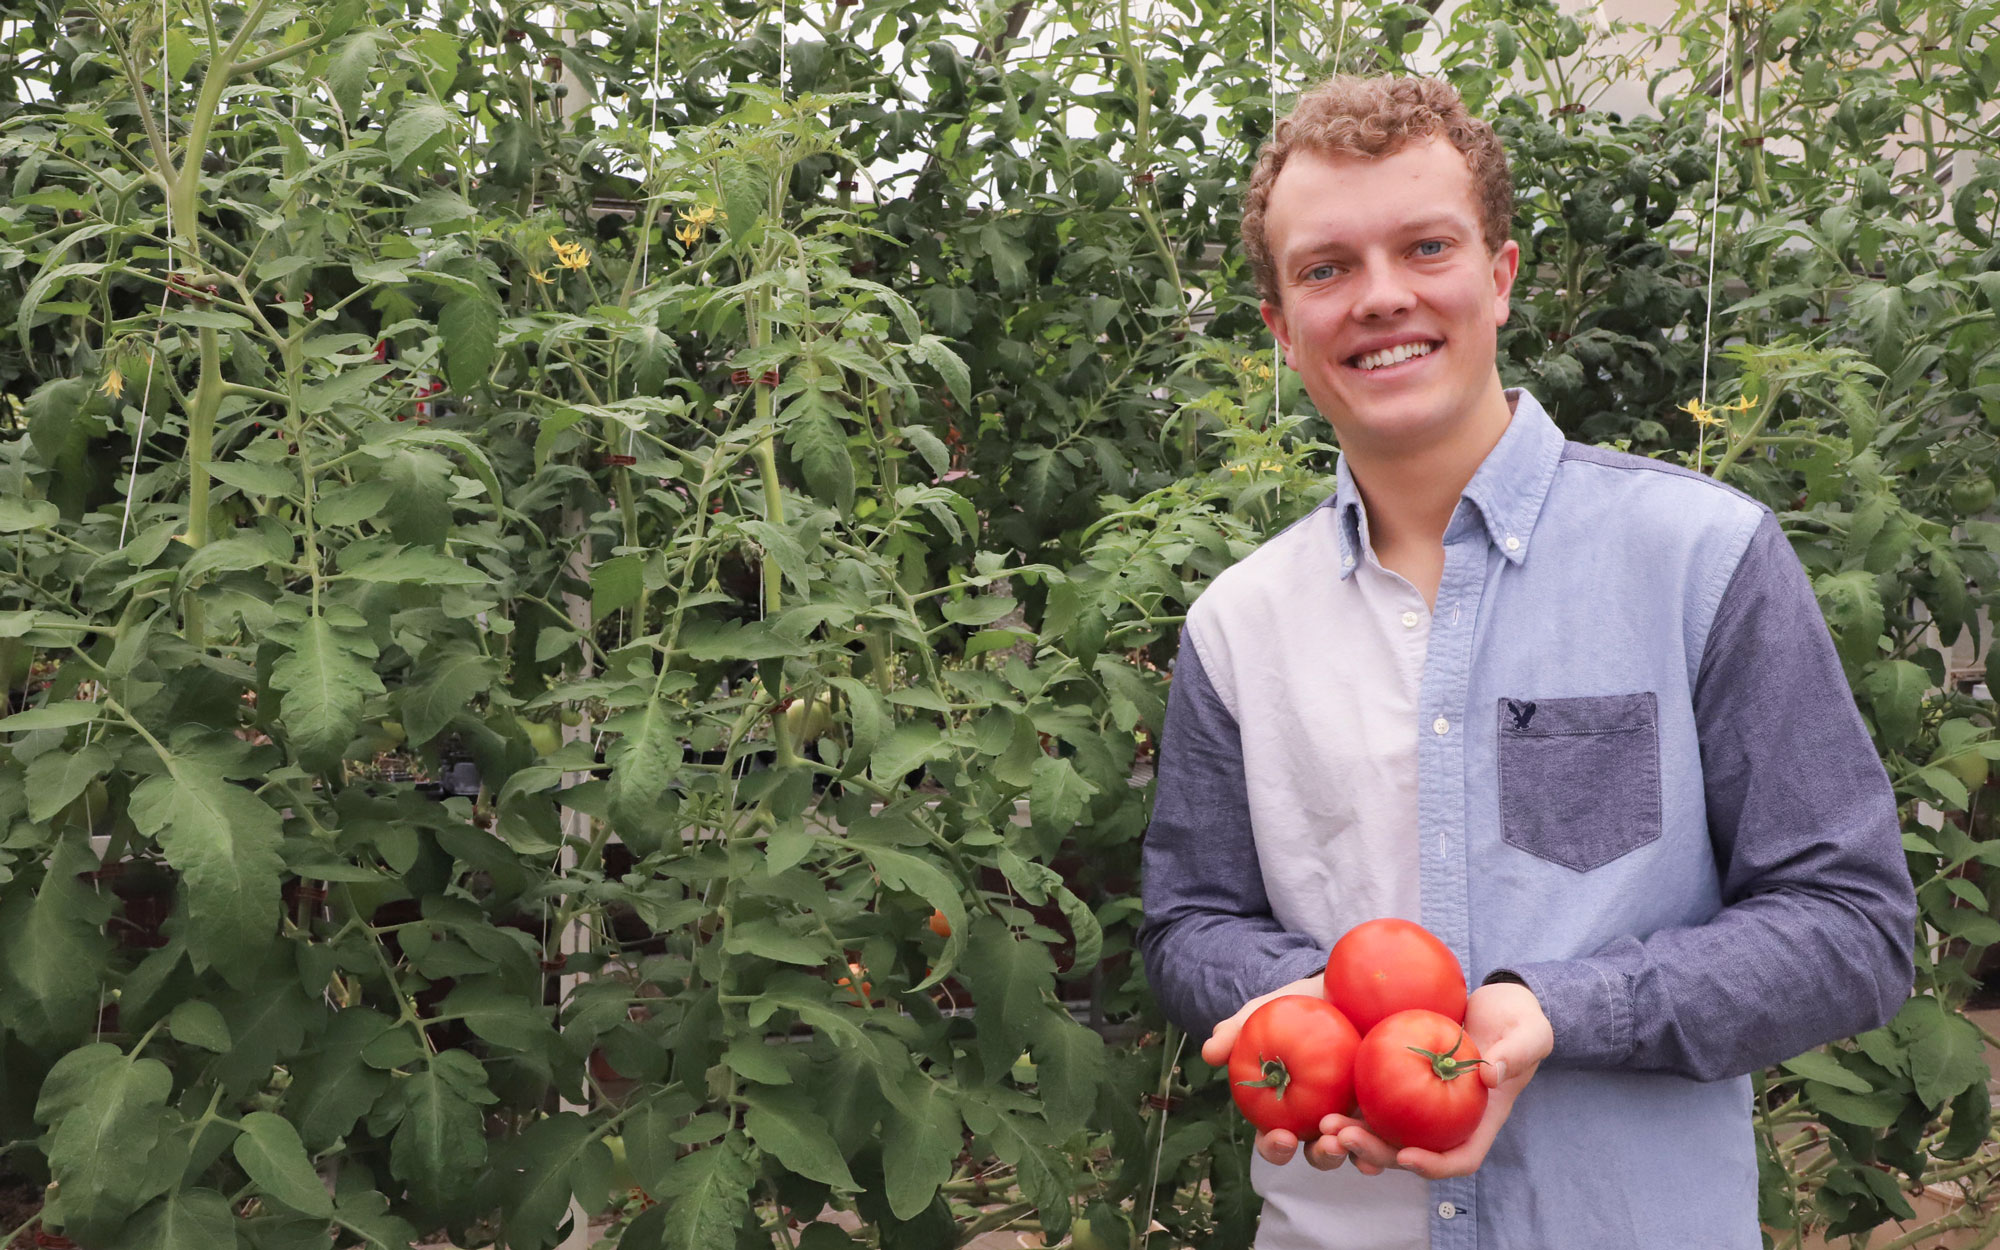 Benjamin Hintz, University of Nebraska–Lincoln Department of Agronomy and Horticulture student, received a six-month Disney Agricultural Internship in Orlando, Florida.